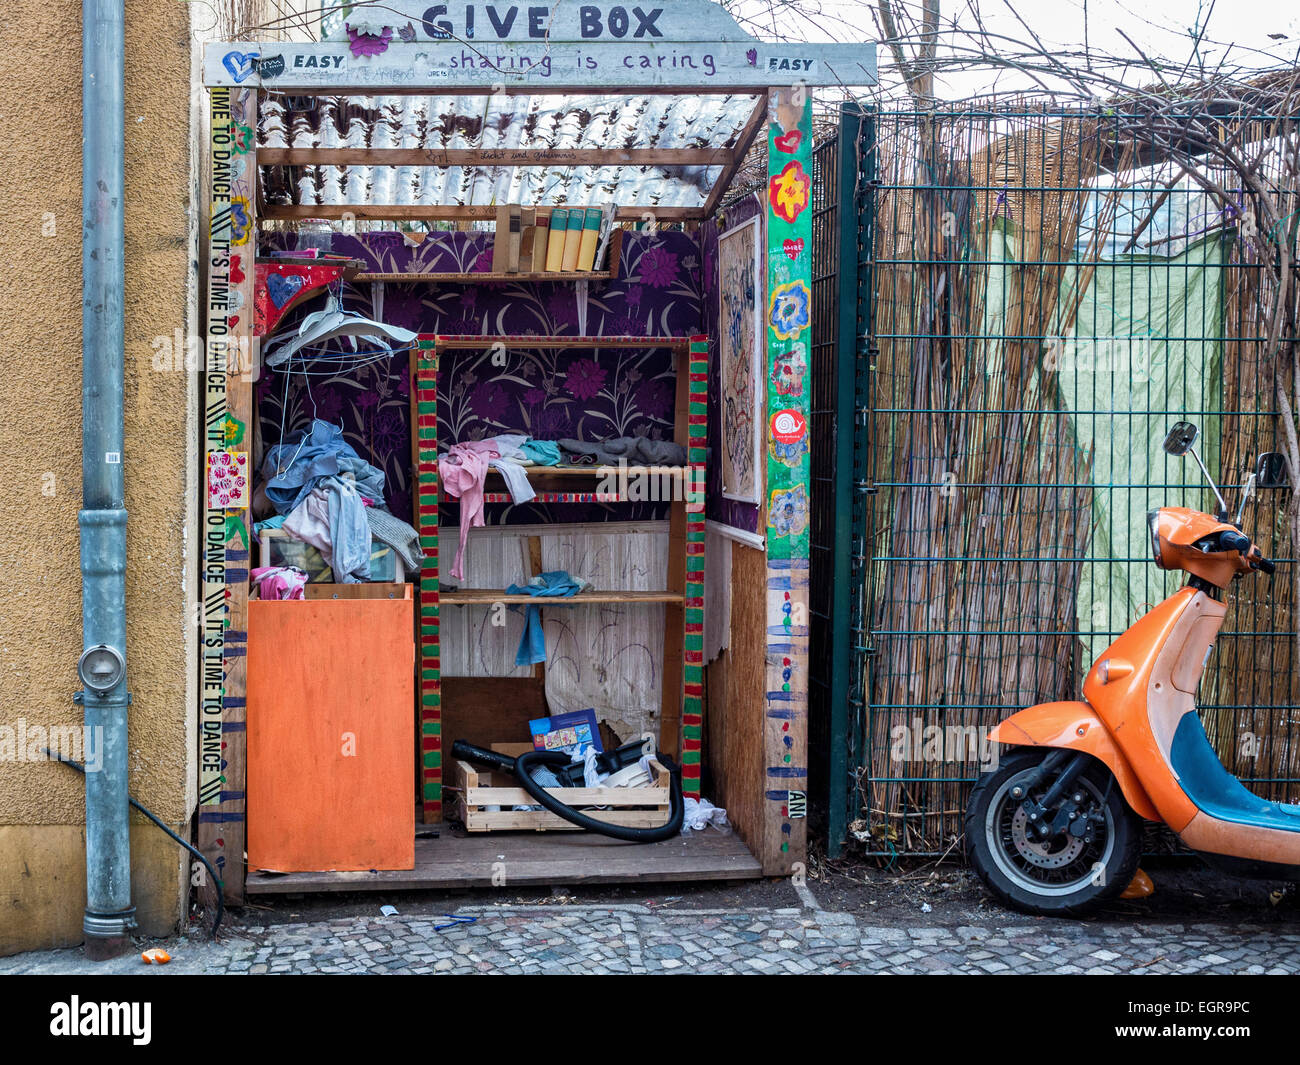 Berlin street charity box - a donations area to donate goods and clothing for the less privileged - Stock Image